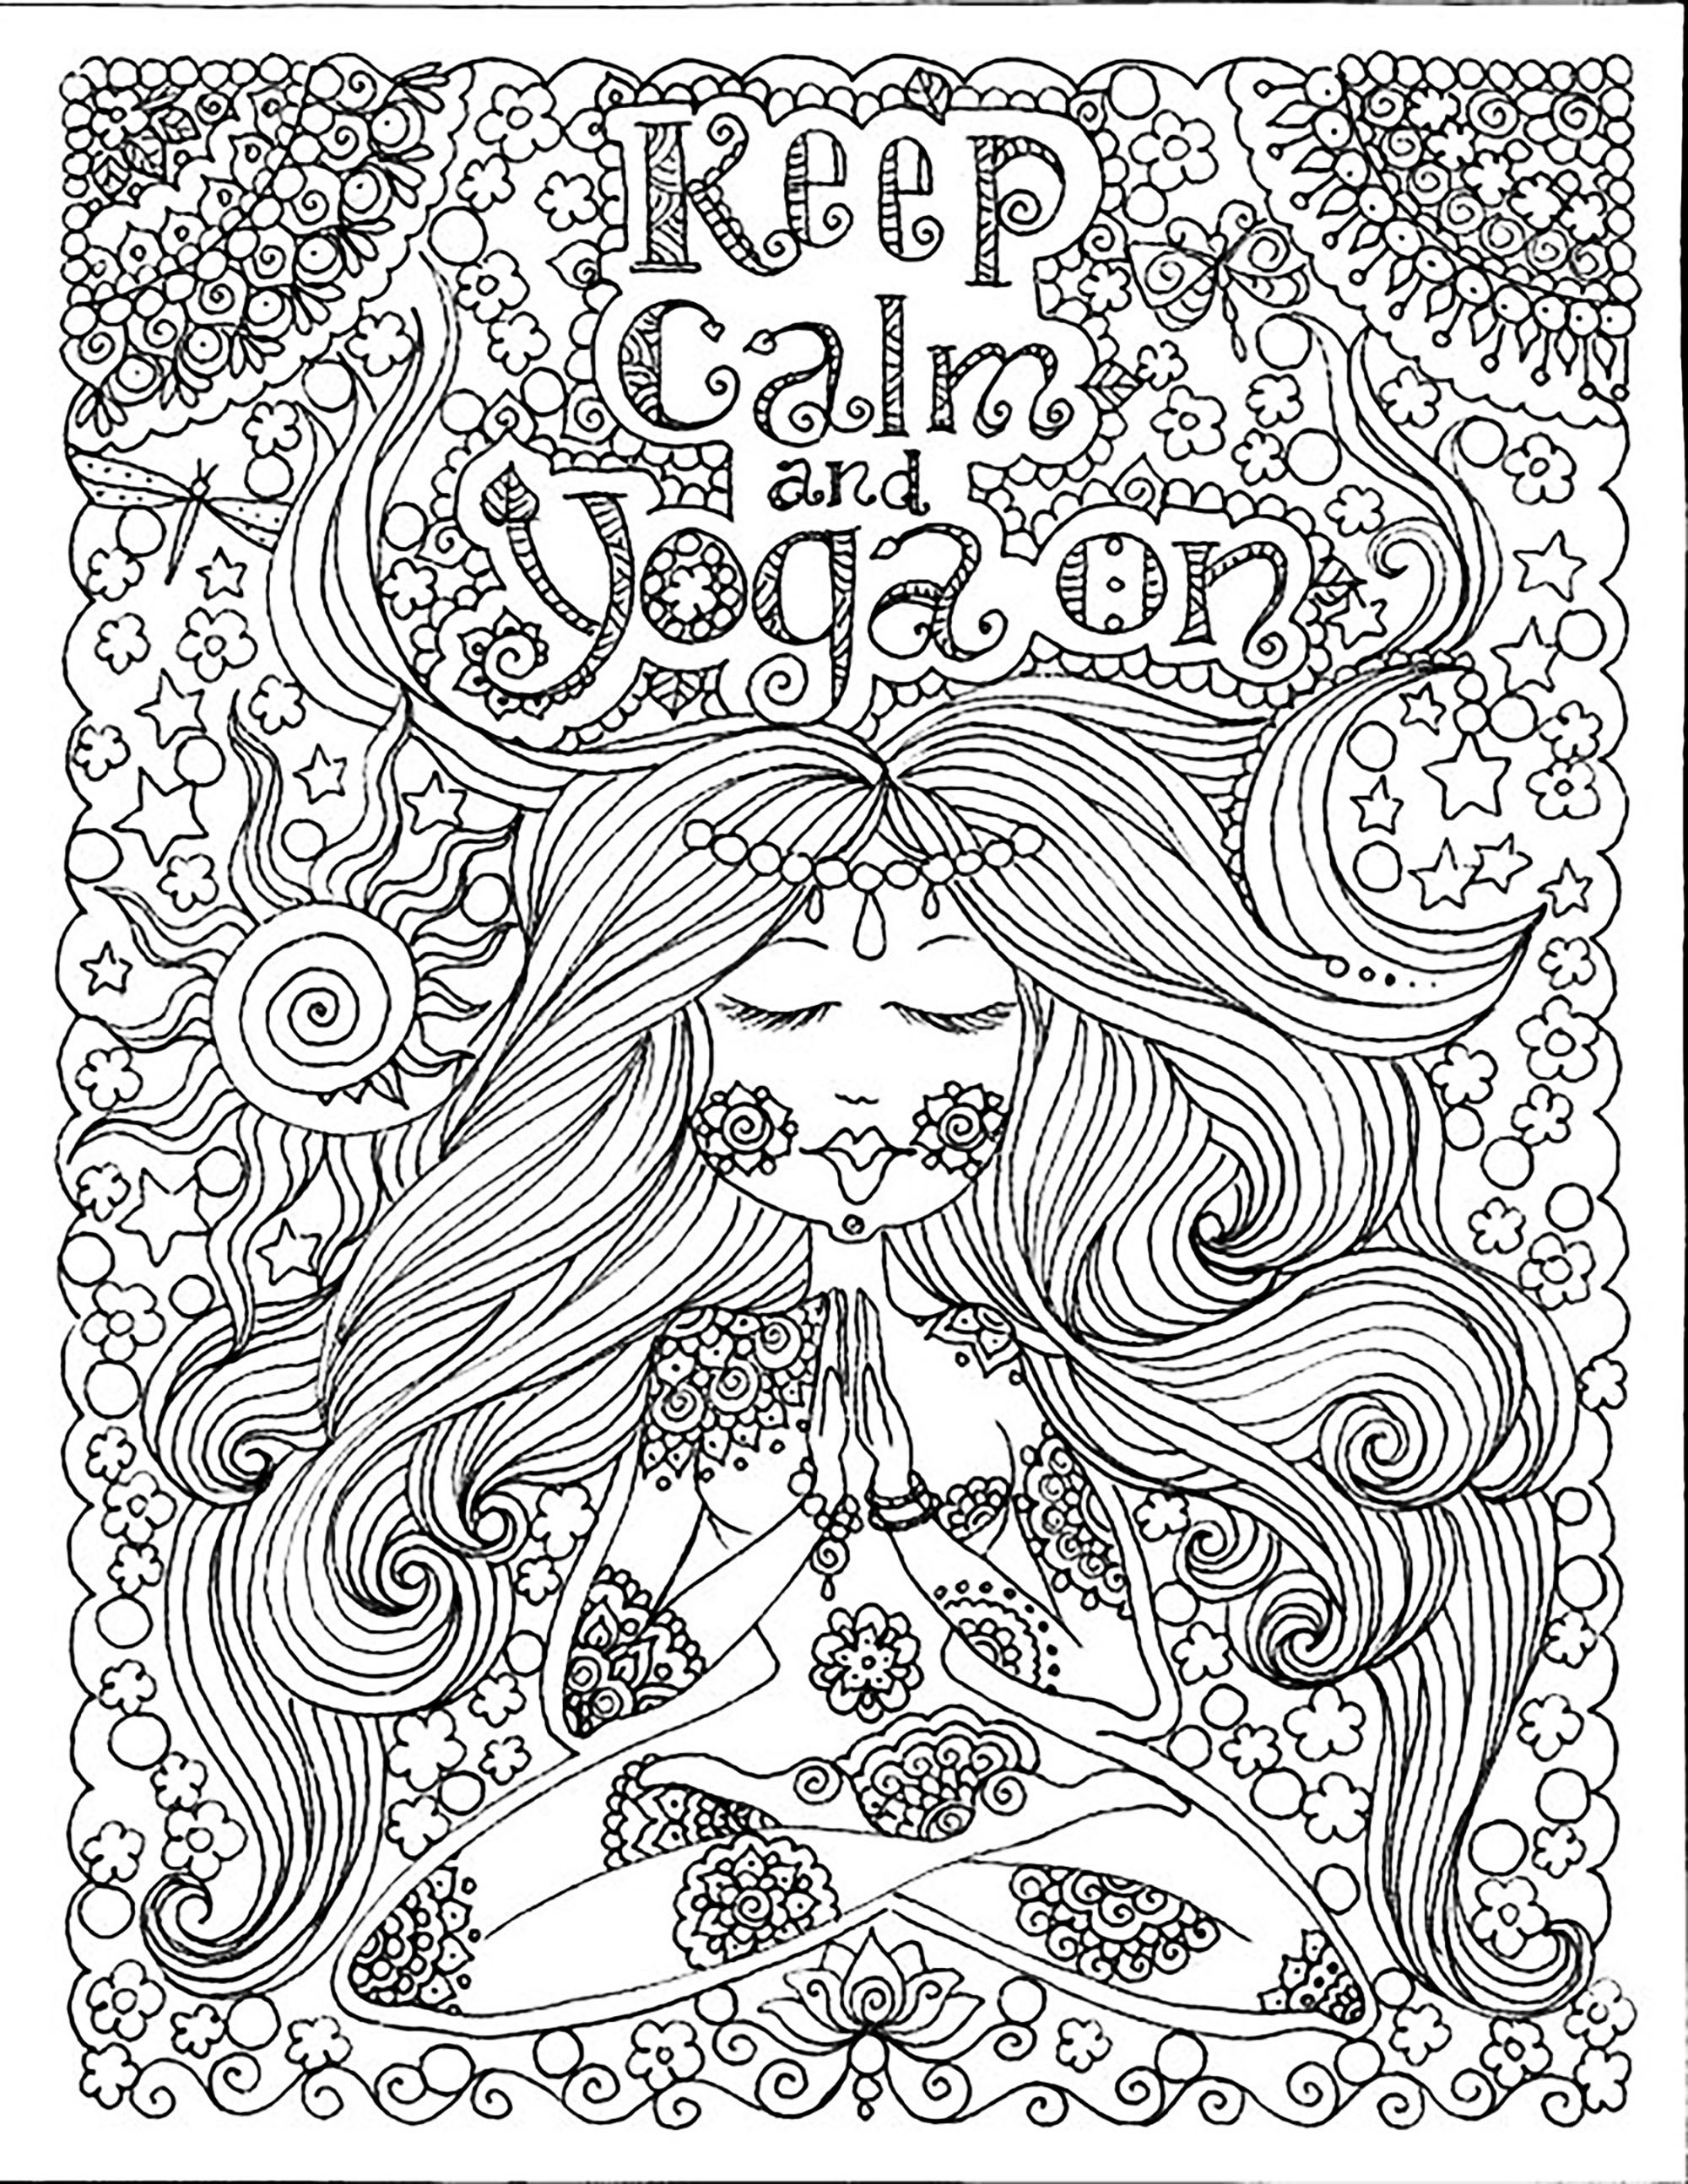 keep calm and do yoga by deborah muller zen and anti stress